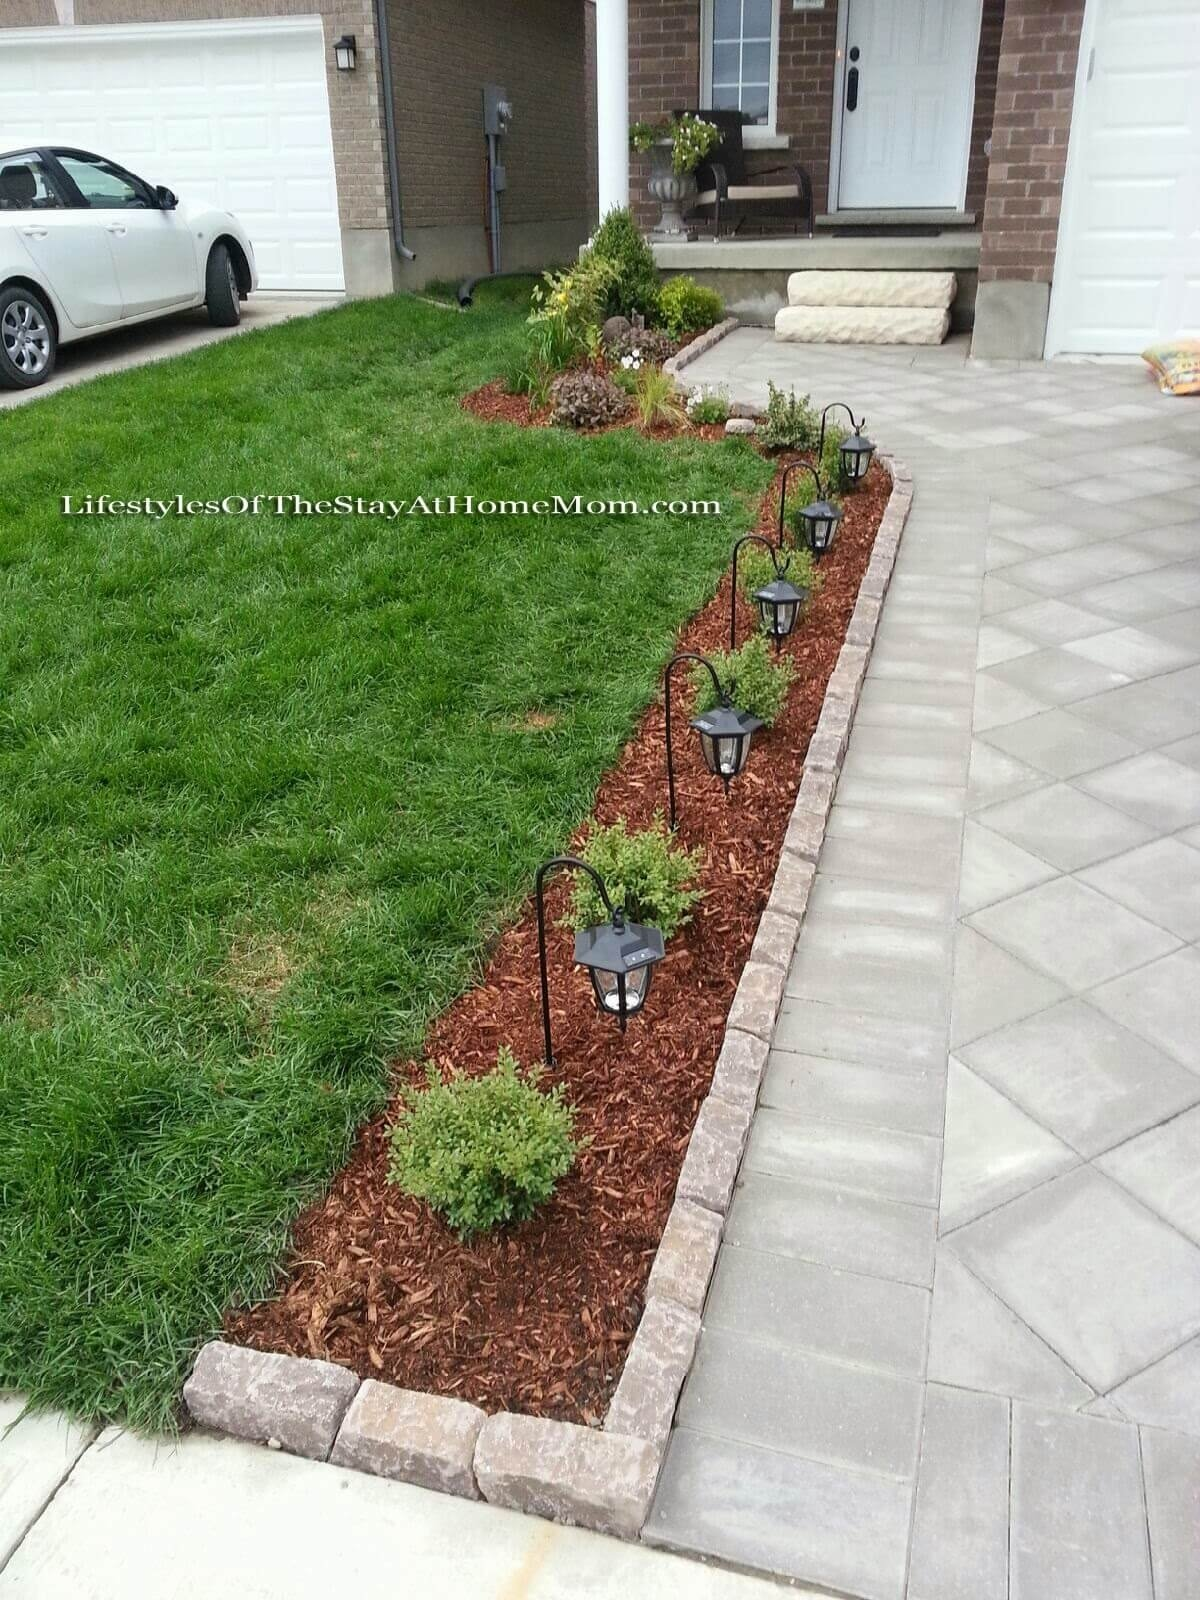 10 Nice Ideas For Front Yard Landscaping 50 best front yard landscaping ideas and garden designs for 2018 4 2020